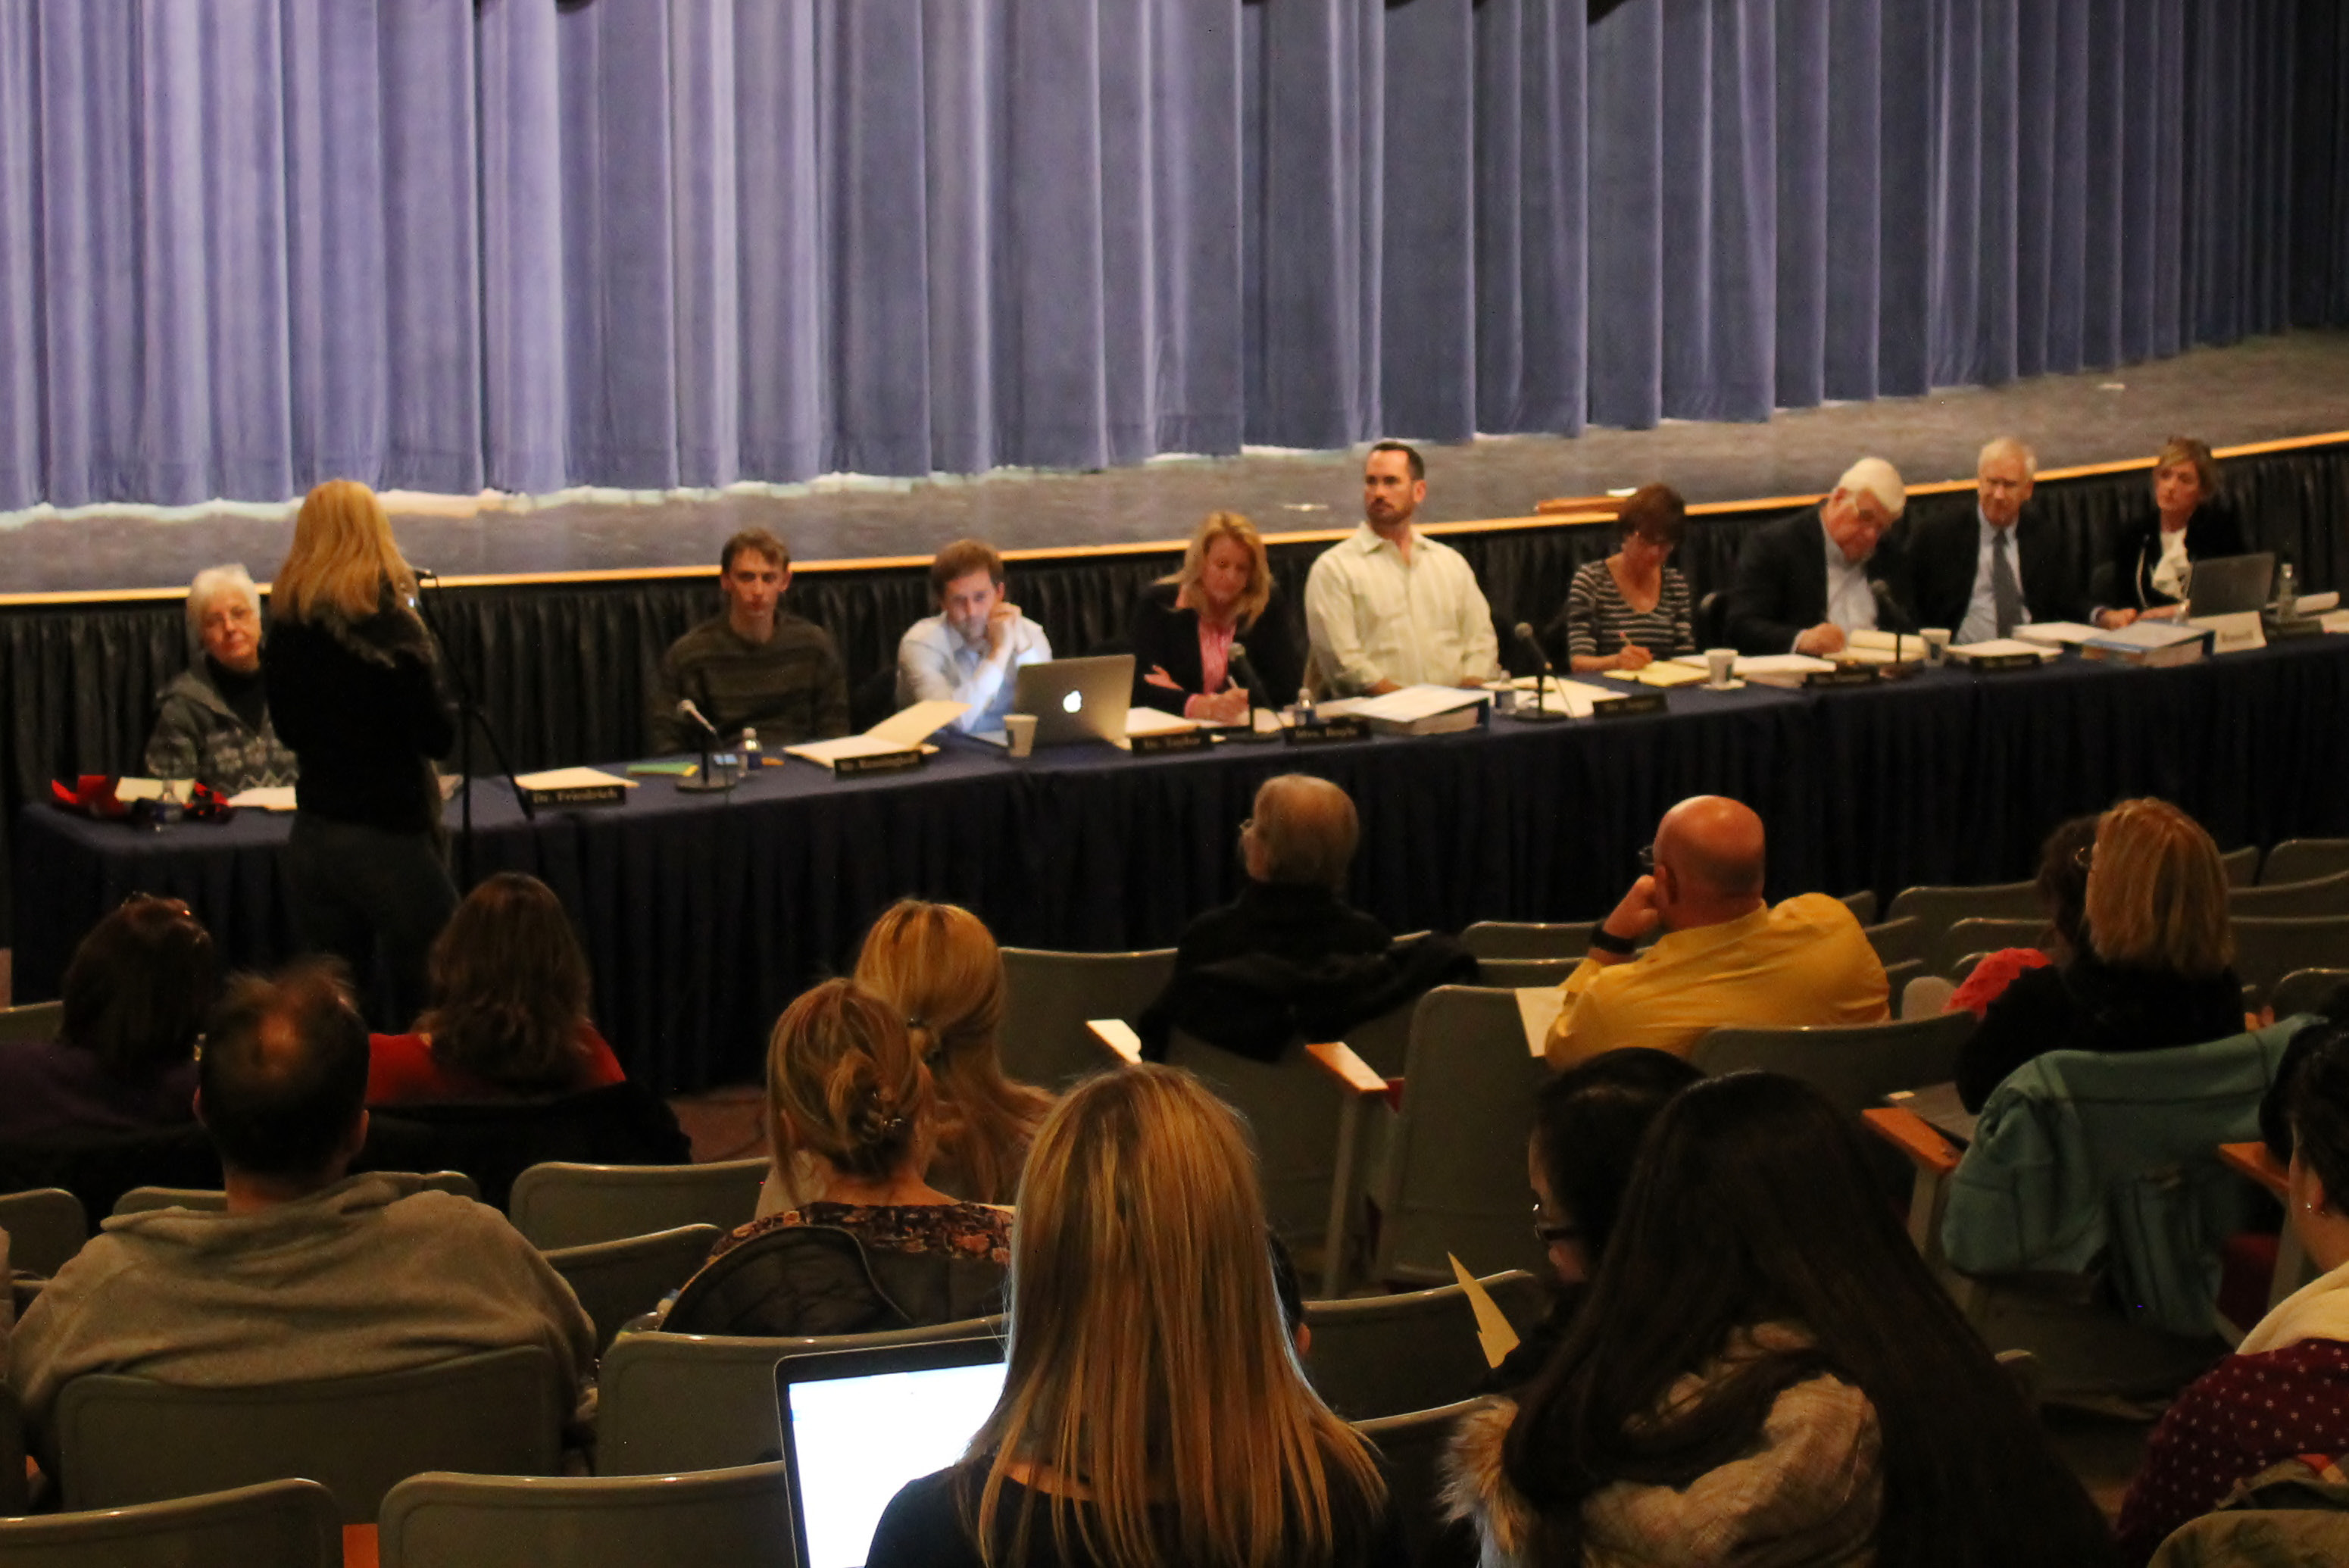 The D13 Board of Education (seated) is in the midst of their budget meetings. Due to public interest, the Feb. 22 meeting was moved to the CRHS auditorium. The next BOE meeting will be on March 8. (Mark Dionne/Town Times)